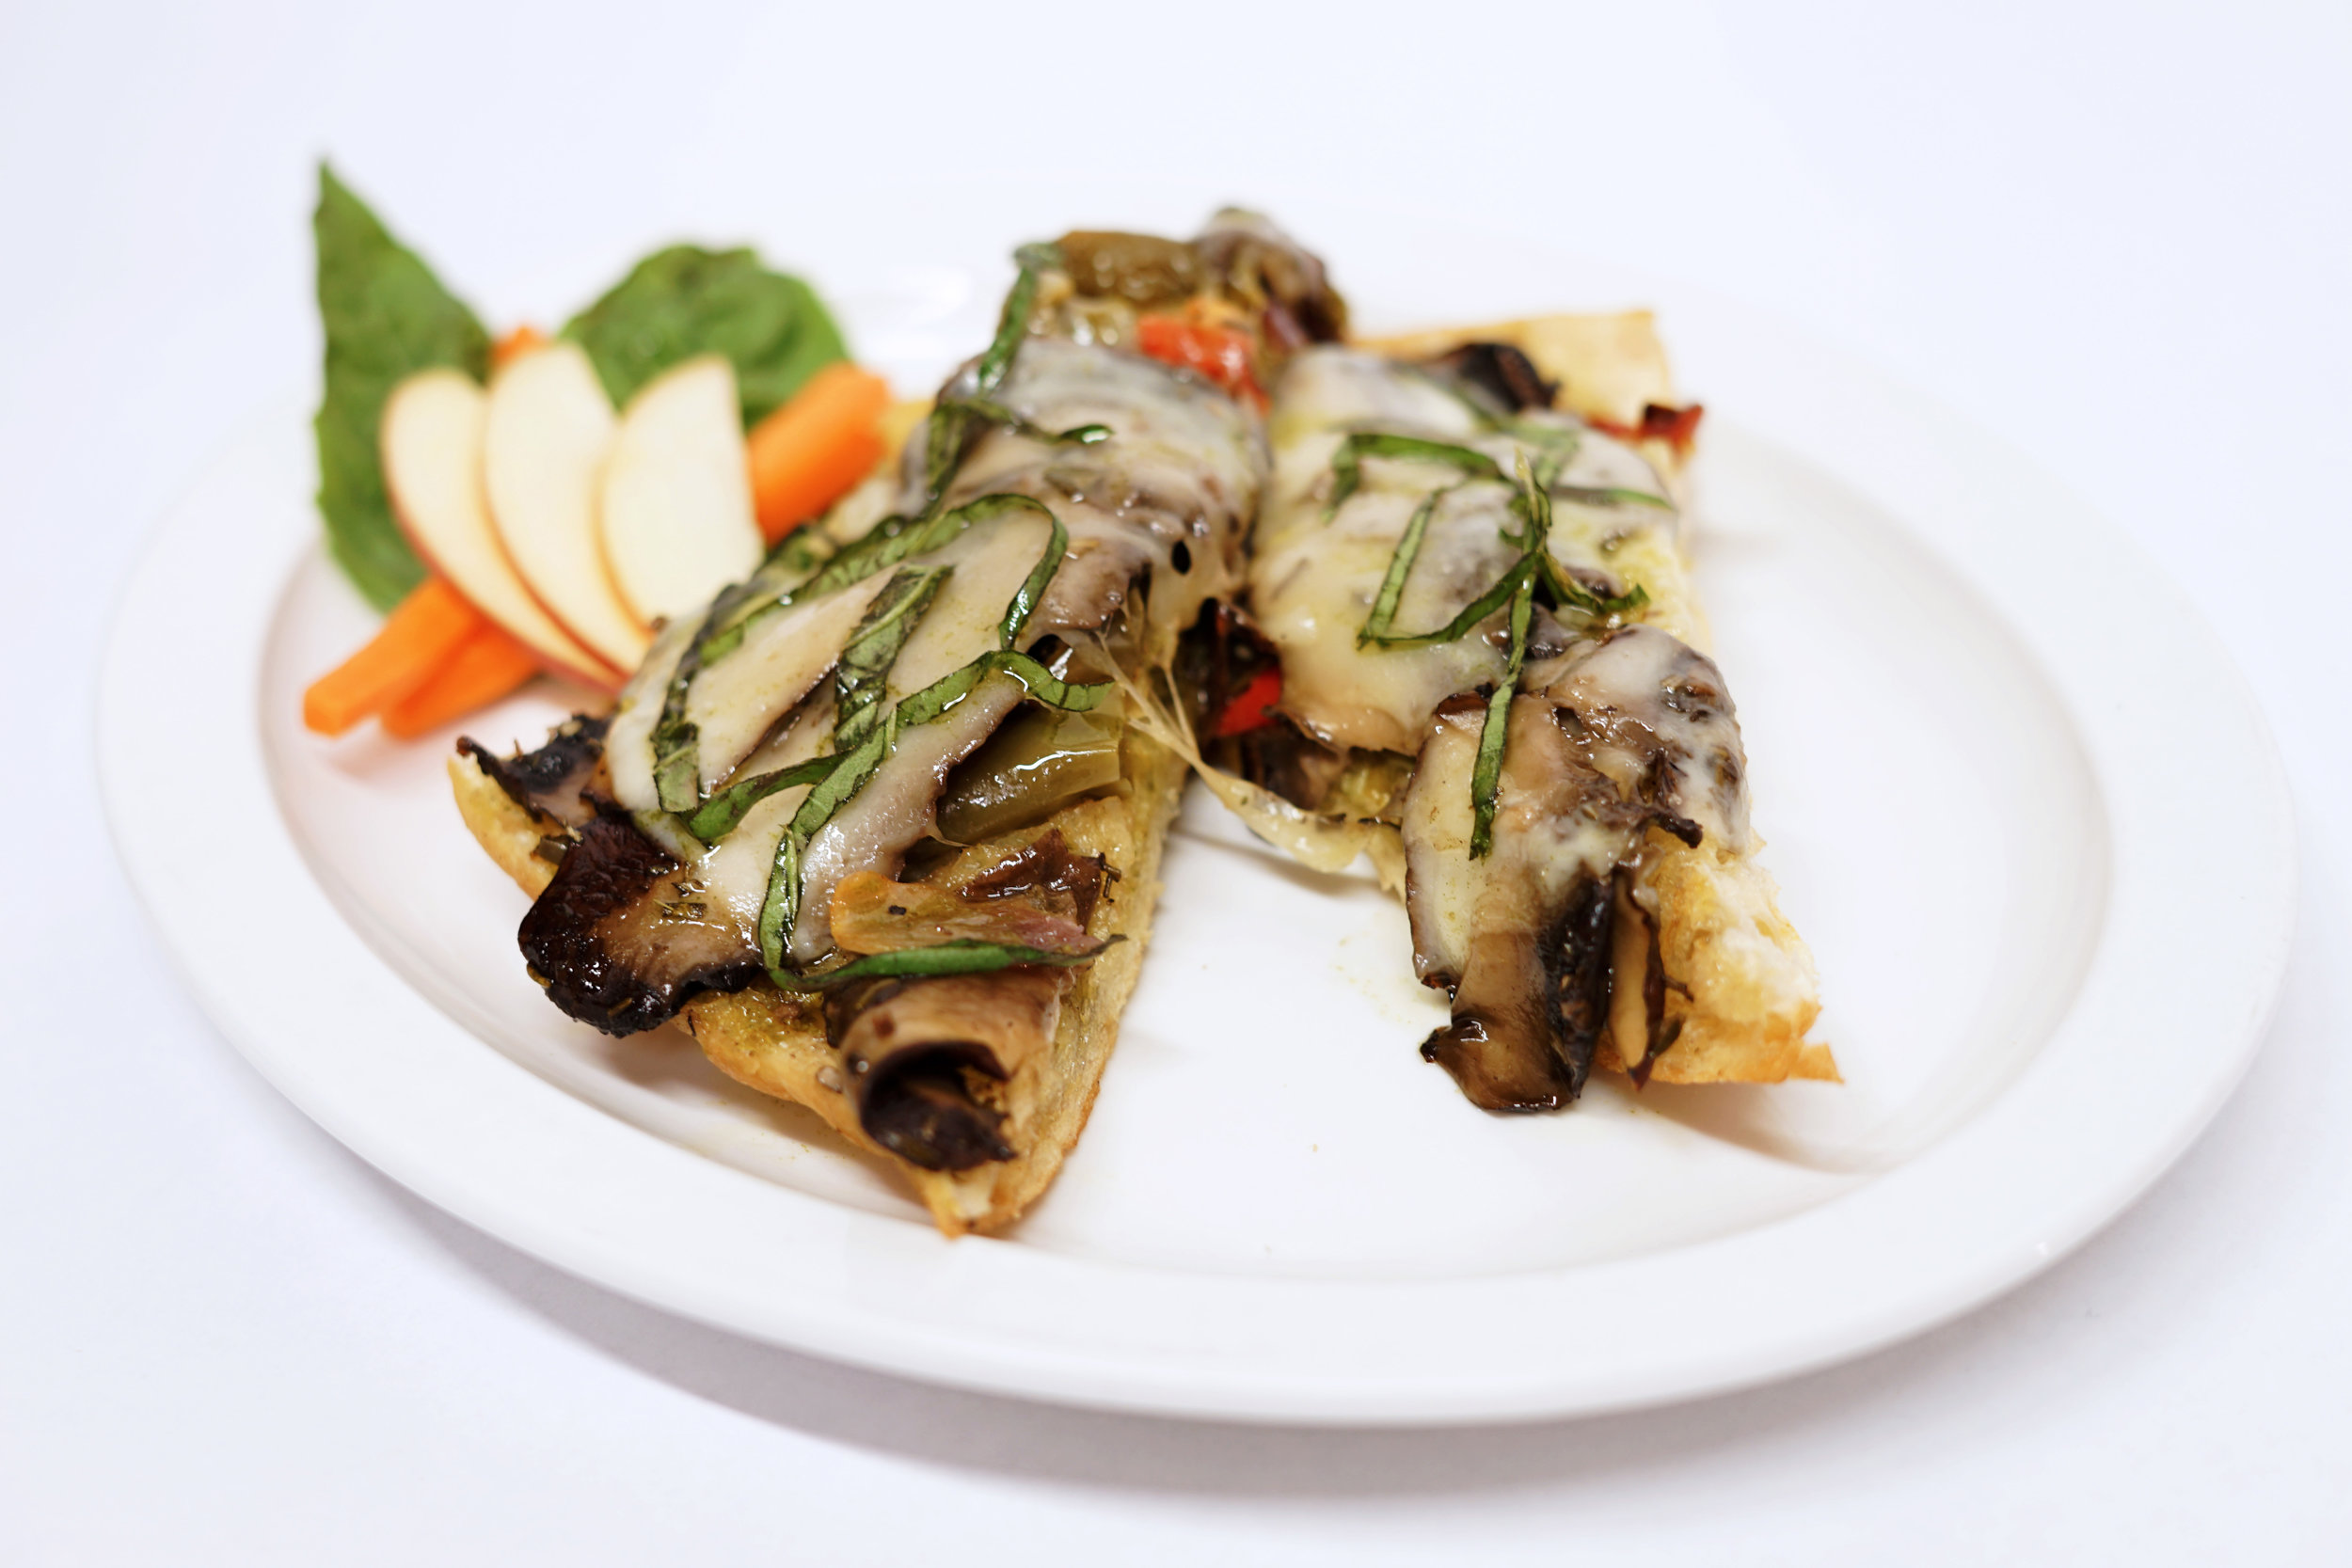 Portabella Mushroom - An oven toasted, open face sandwich on Foccacia bread with marinated portabella mushroom, pesto mayo, roasted bell peppers, and melted provolone cheese. Garnished with chopped basil and drizzle of pesto oil.